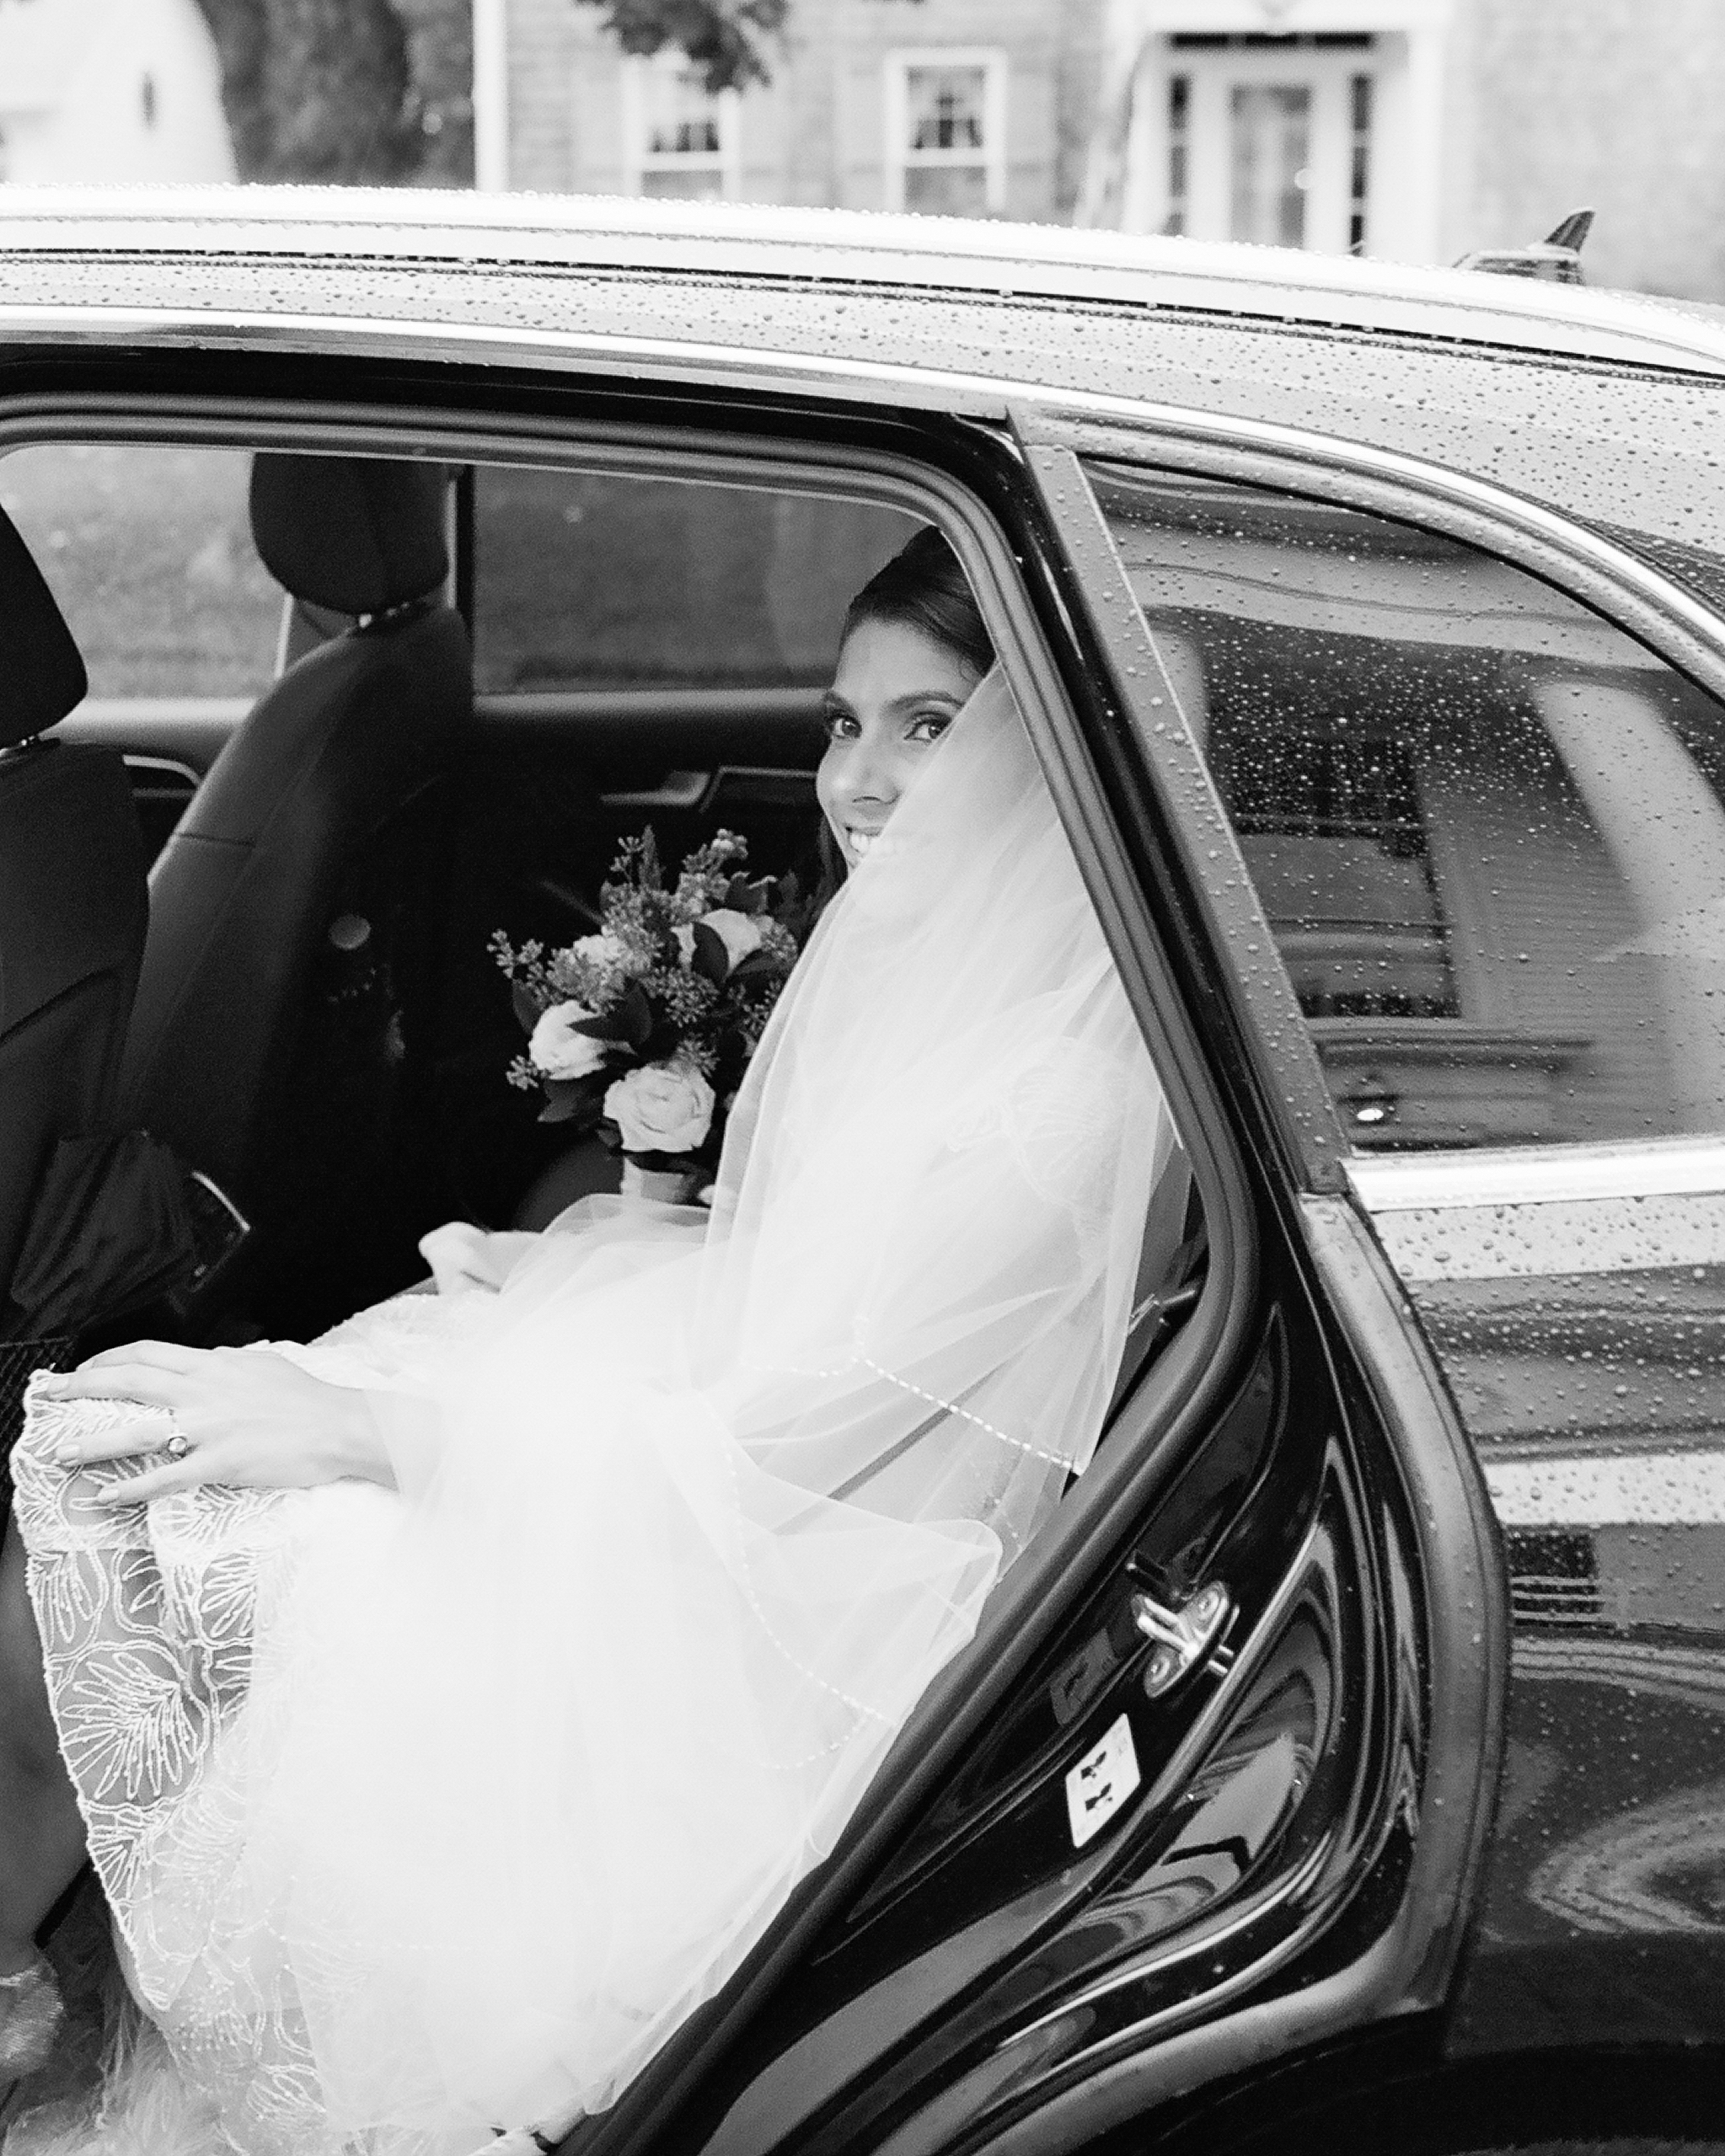 lindsay-garrett-wedding-car-0471-s111850-0415.jpg